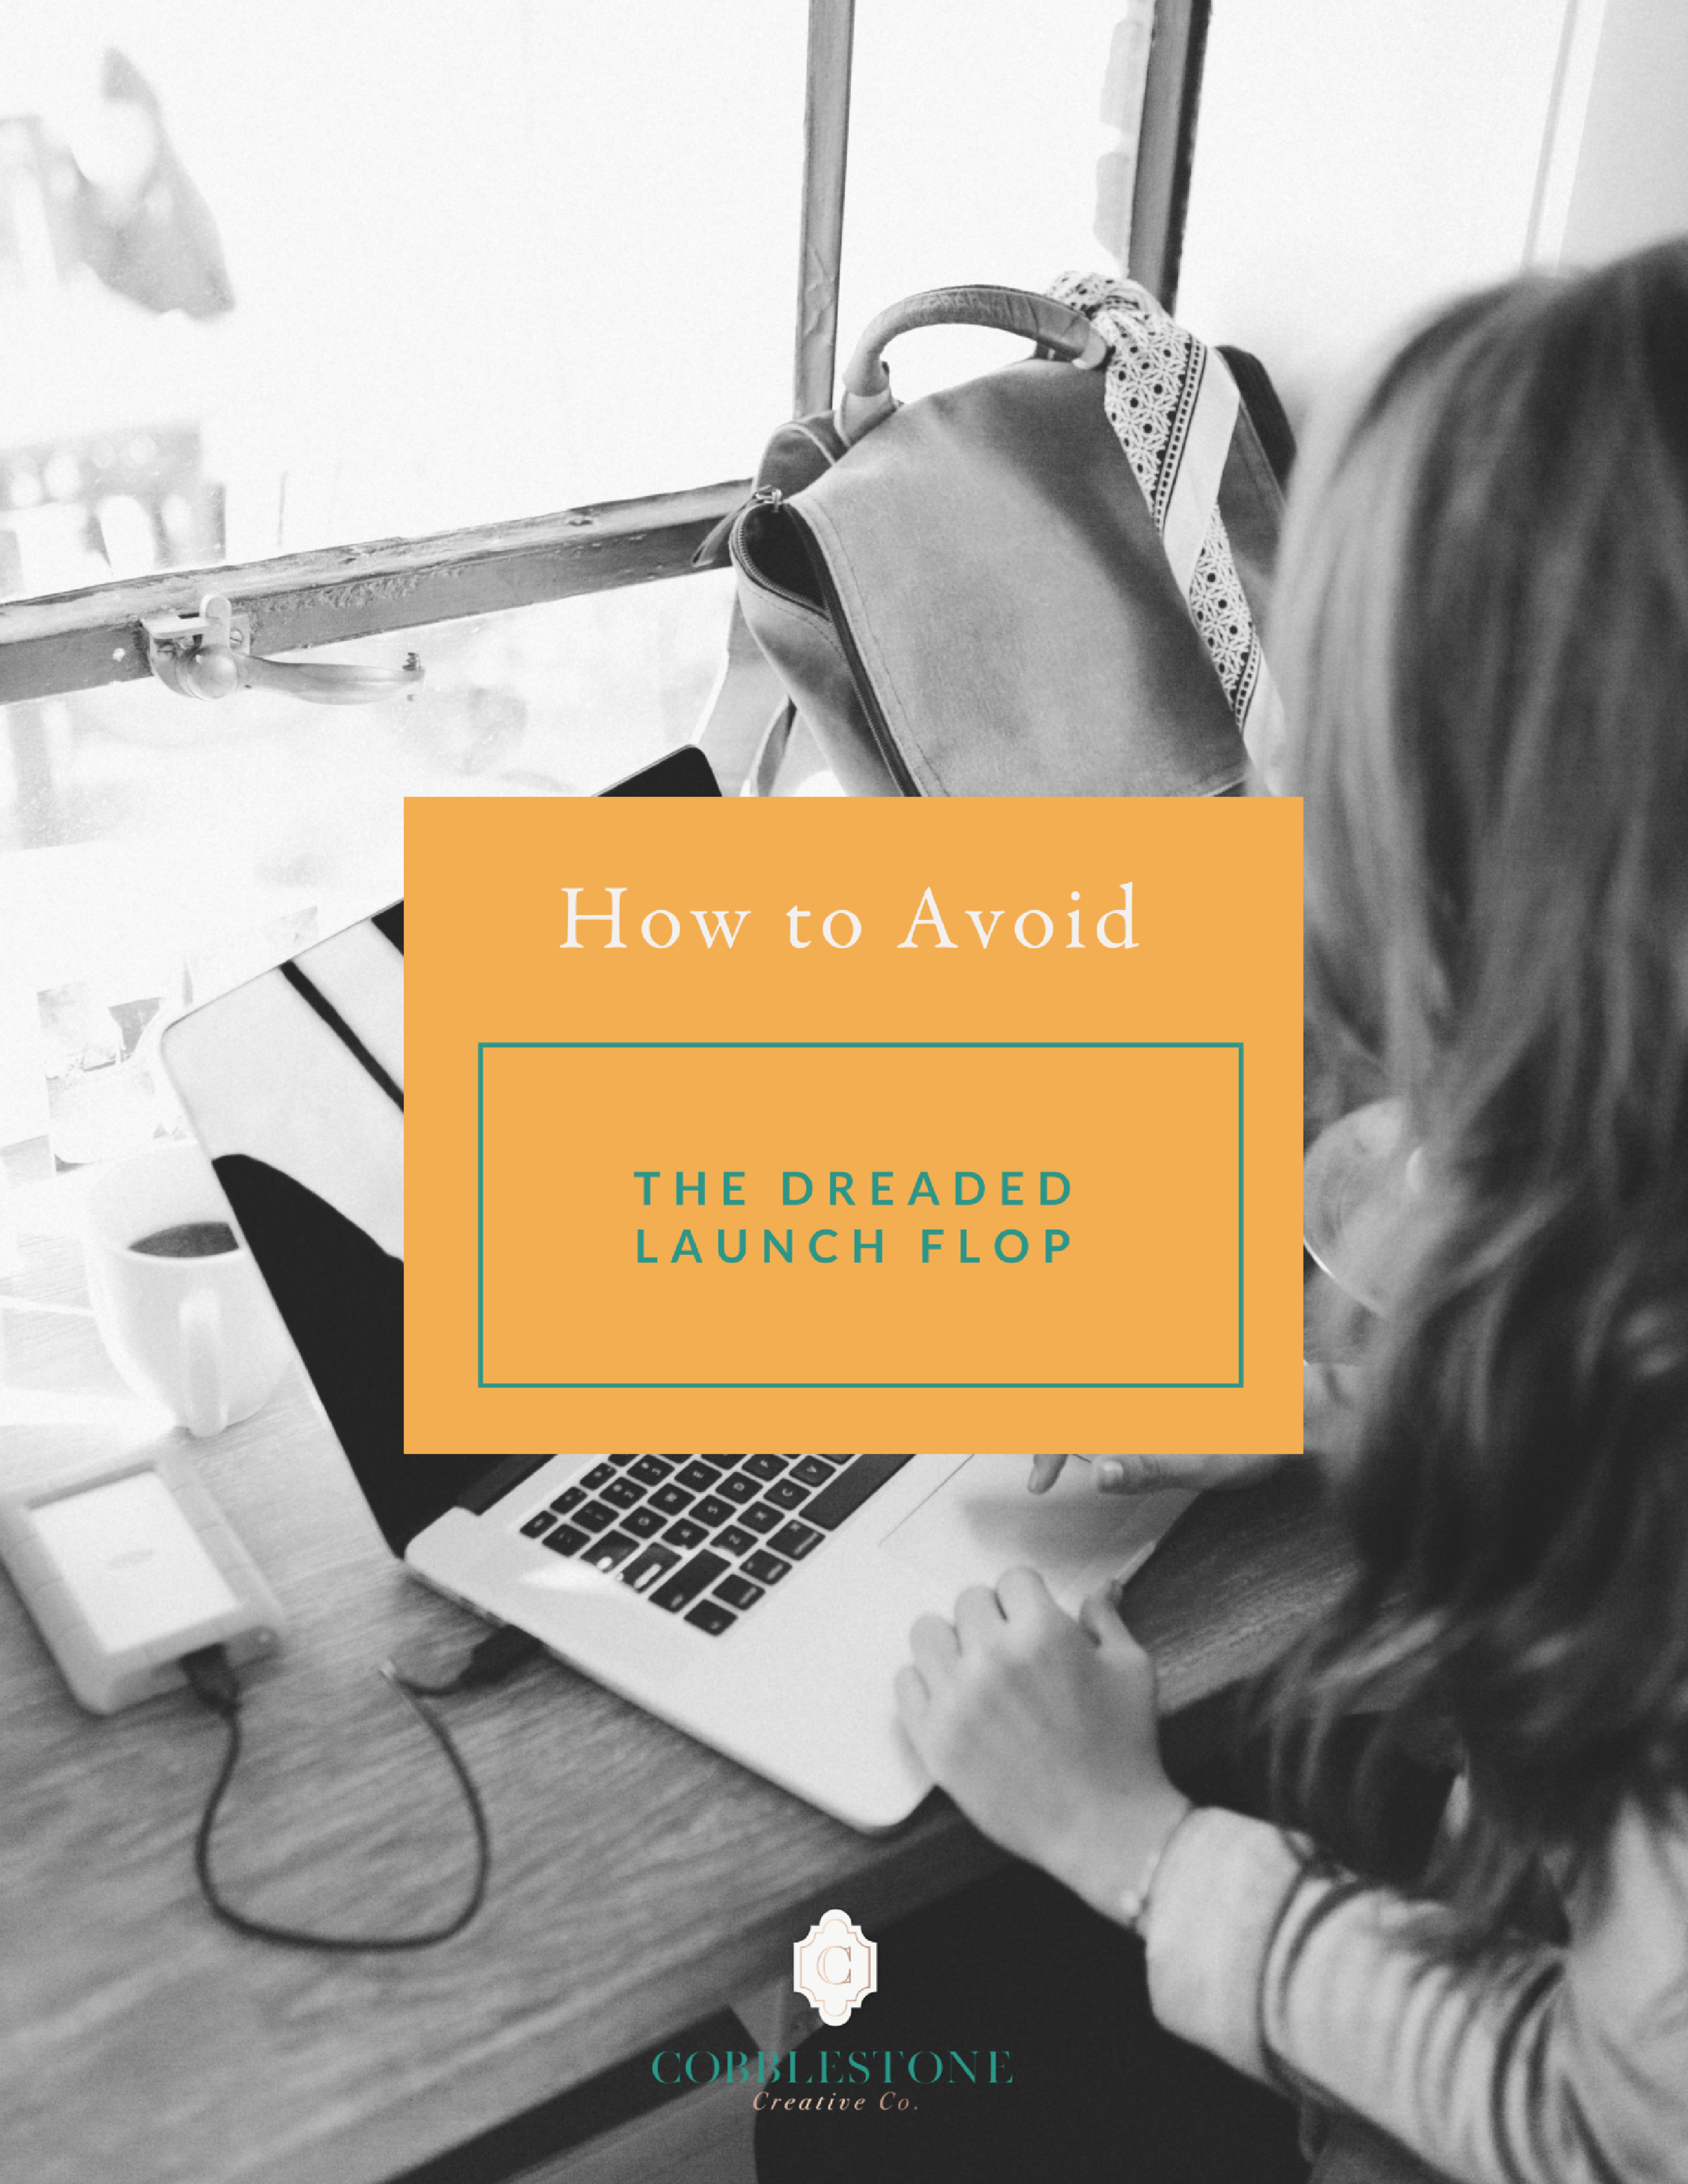 Launching a product, service, or program can be like a rollercoaster ride. There is nothing worse than building hype for a launch only for it to completely flop. Click through to learn 3 ways you can pre-validate your next launch idea to avoid the dreaded launch flop.